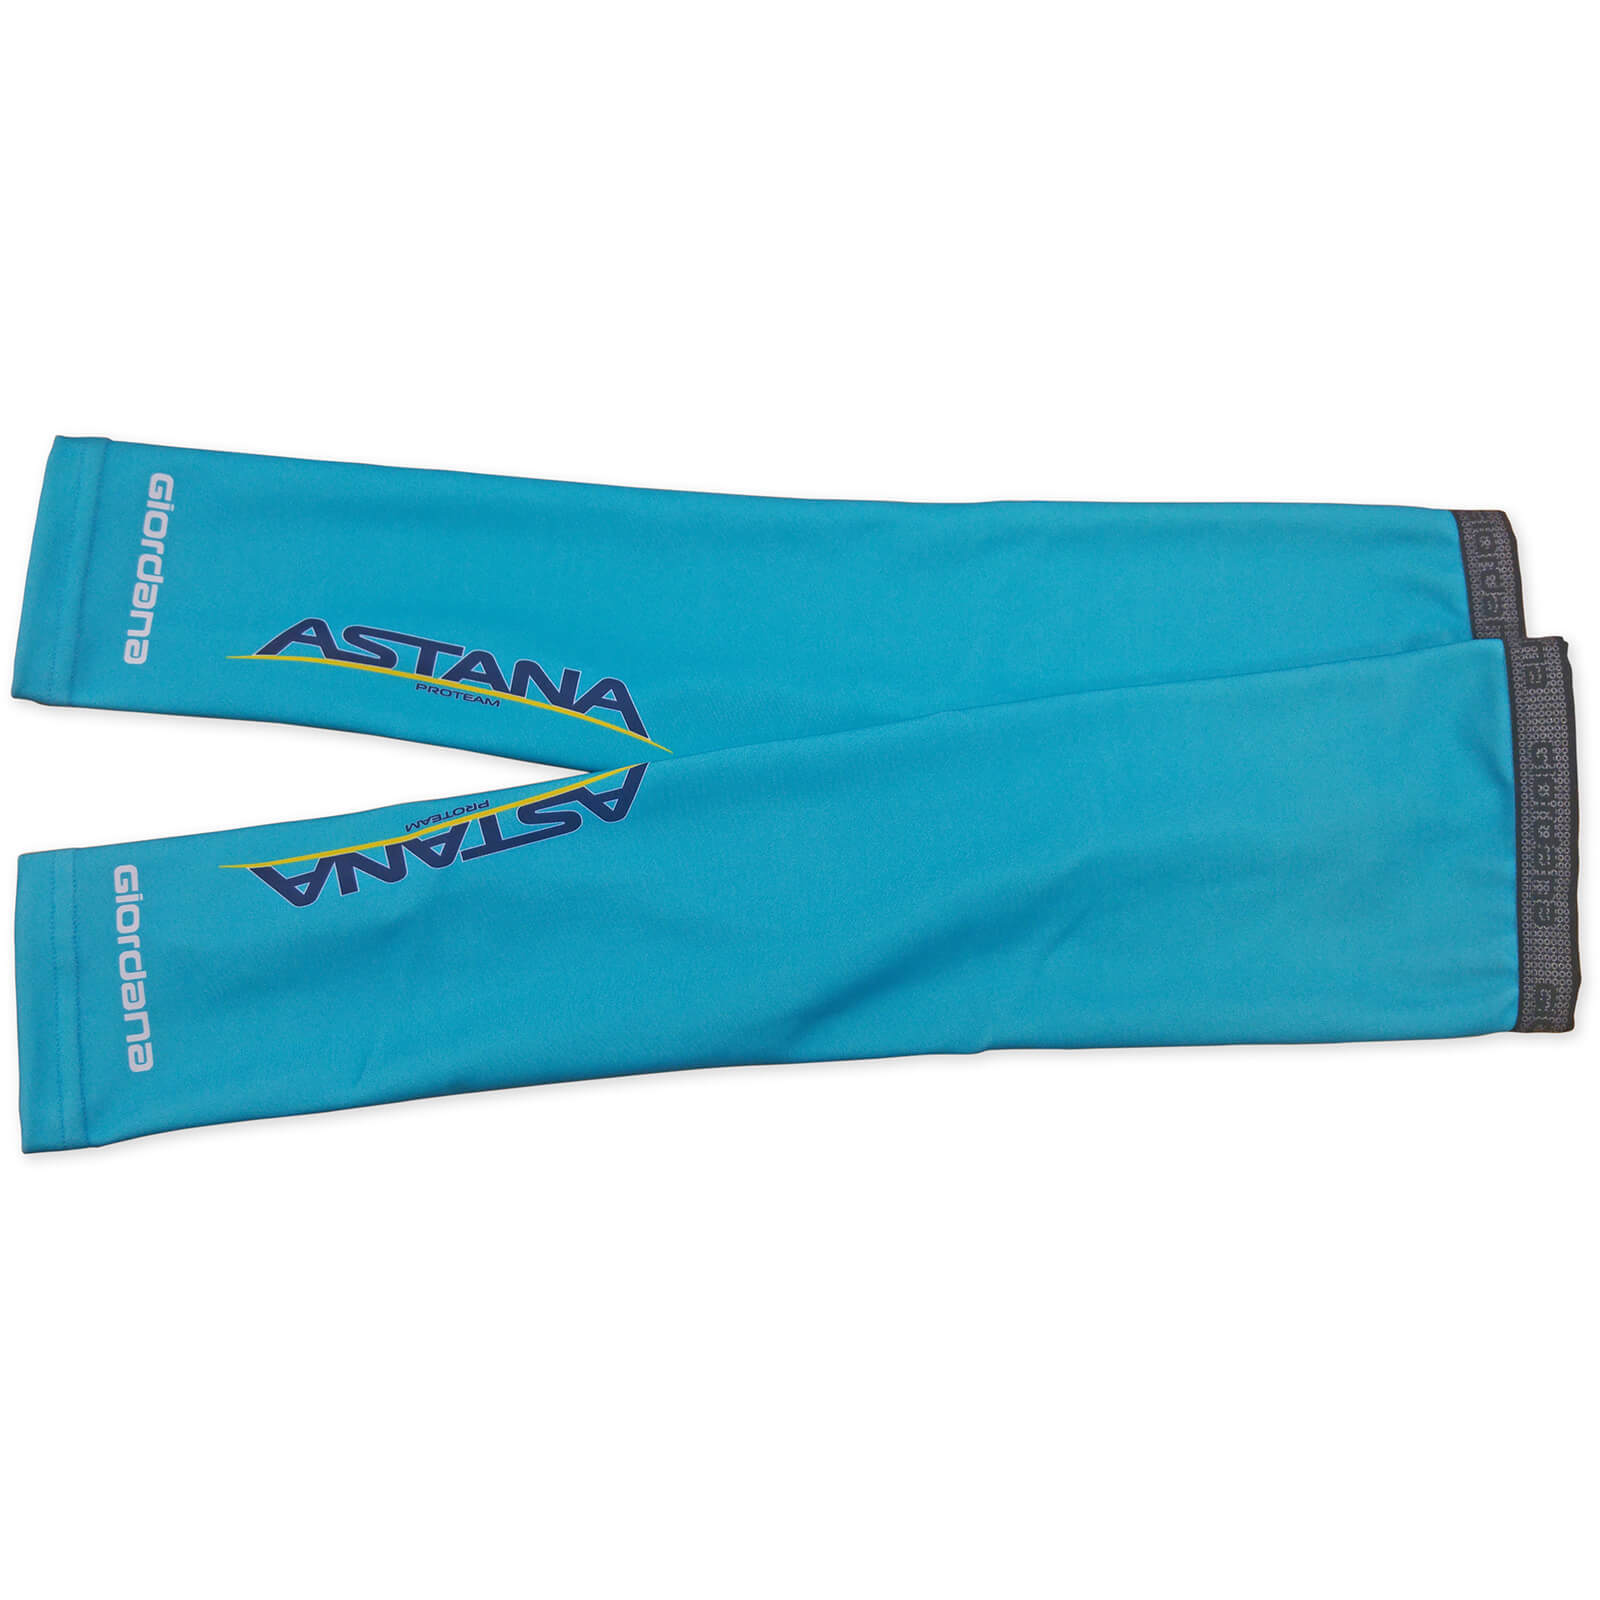 Astana Pro Team Arm Warmers